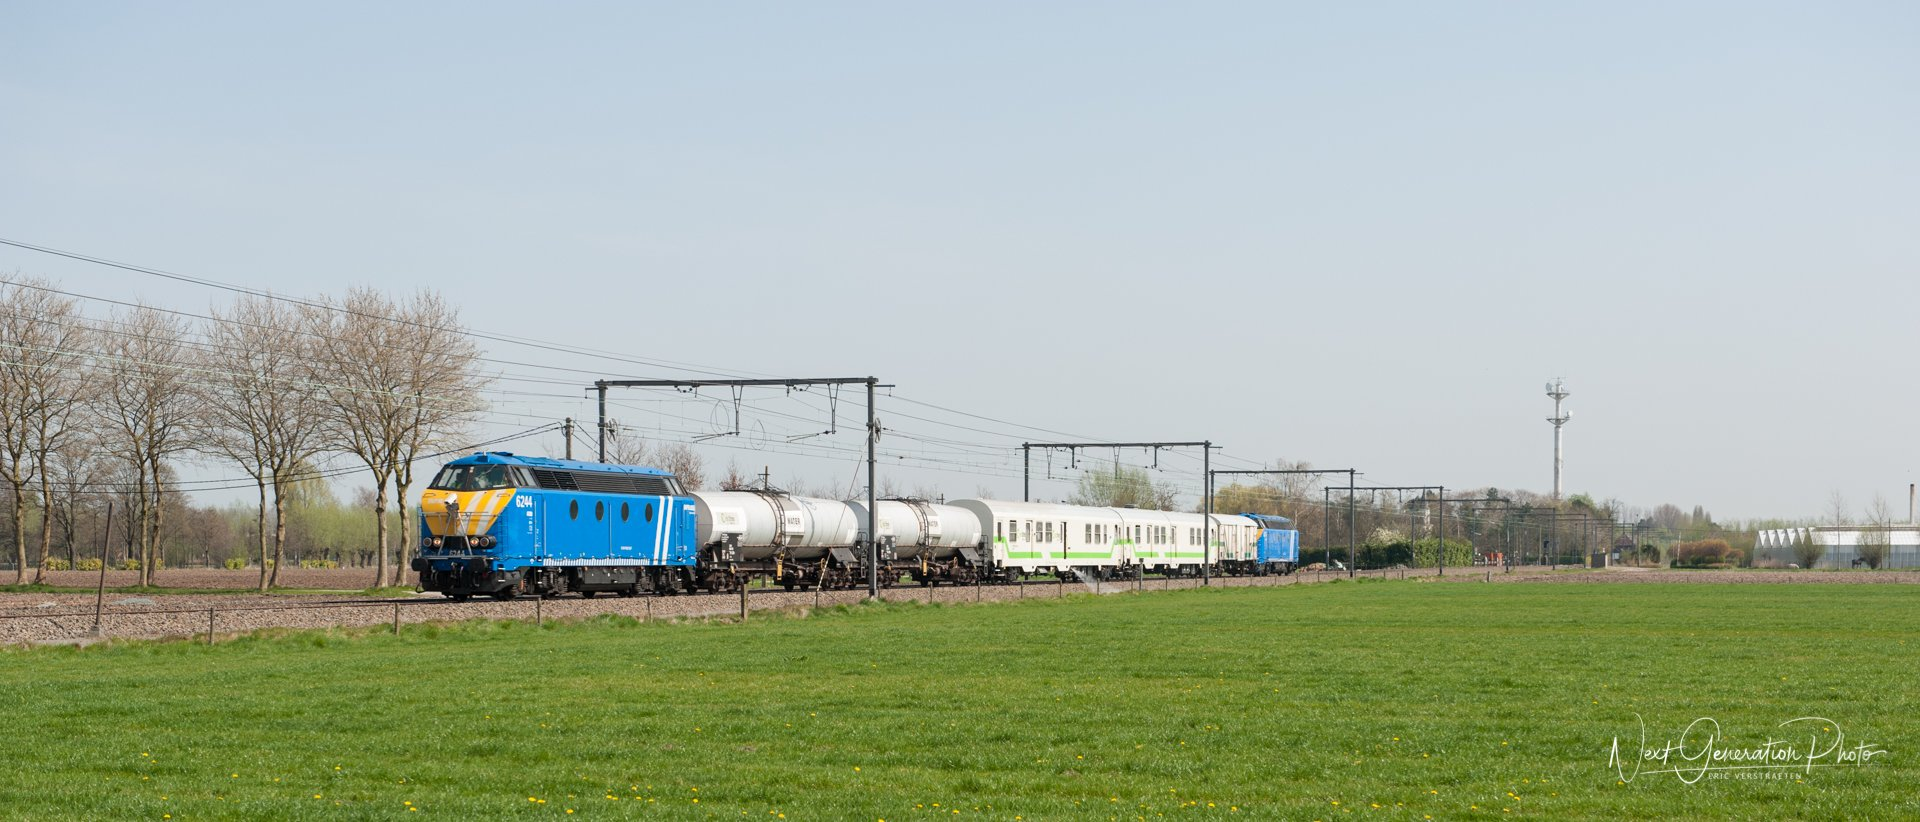 6244 Sproeitrein Destelbergen 2015-04-16-5